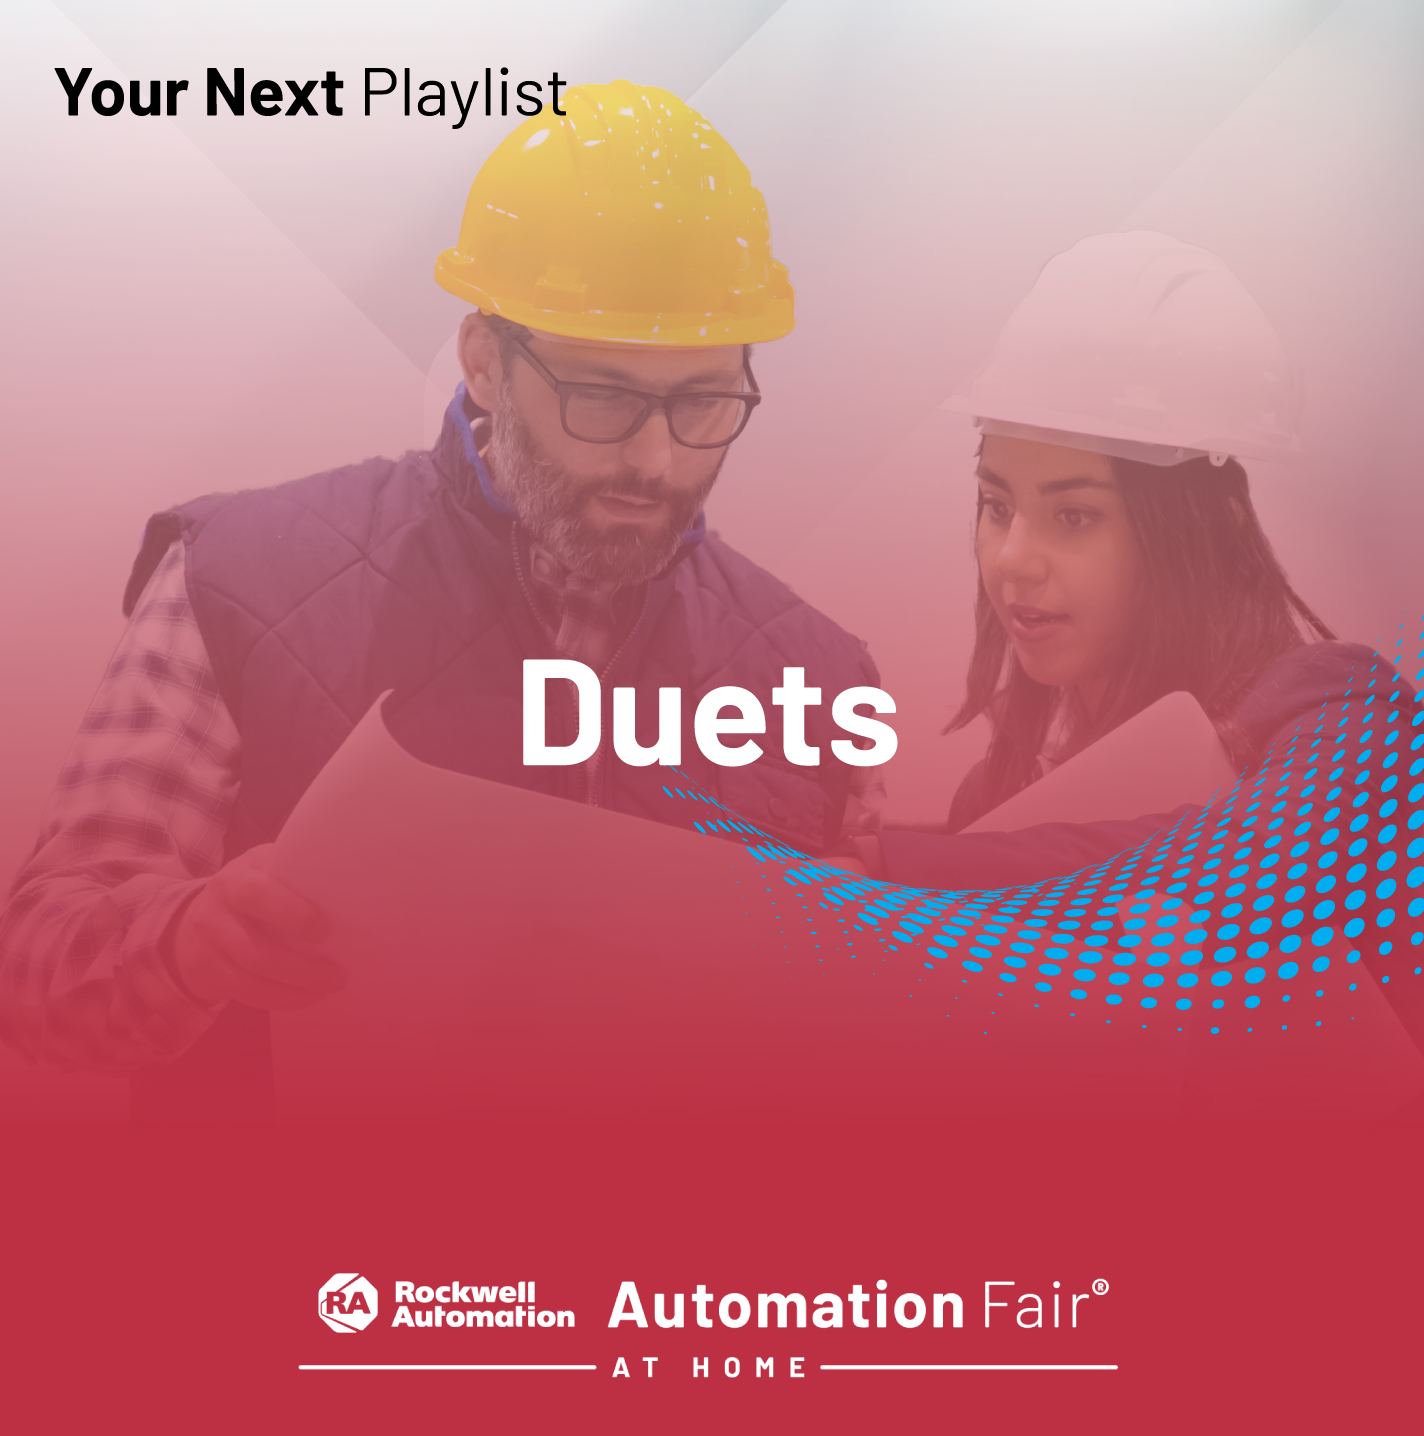 Duets webinar playlist featuring the top sessions presented by members of the PartnerNetwork™ at Automation Fair® At Home